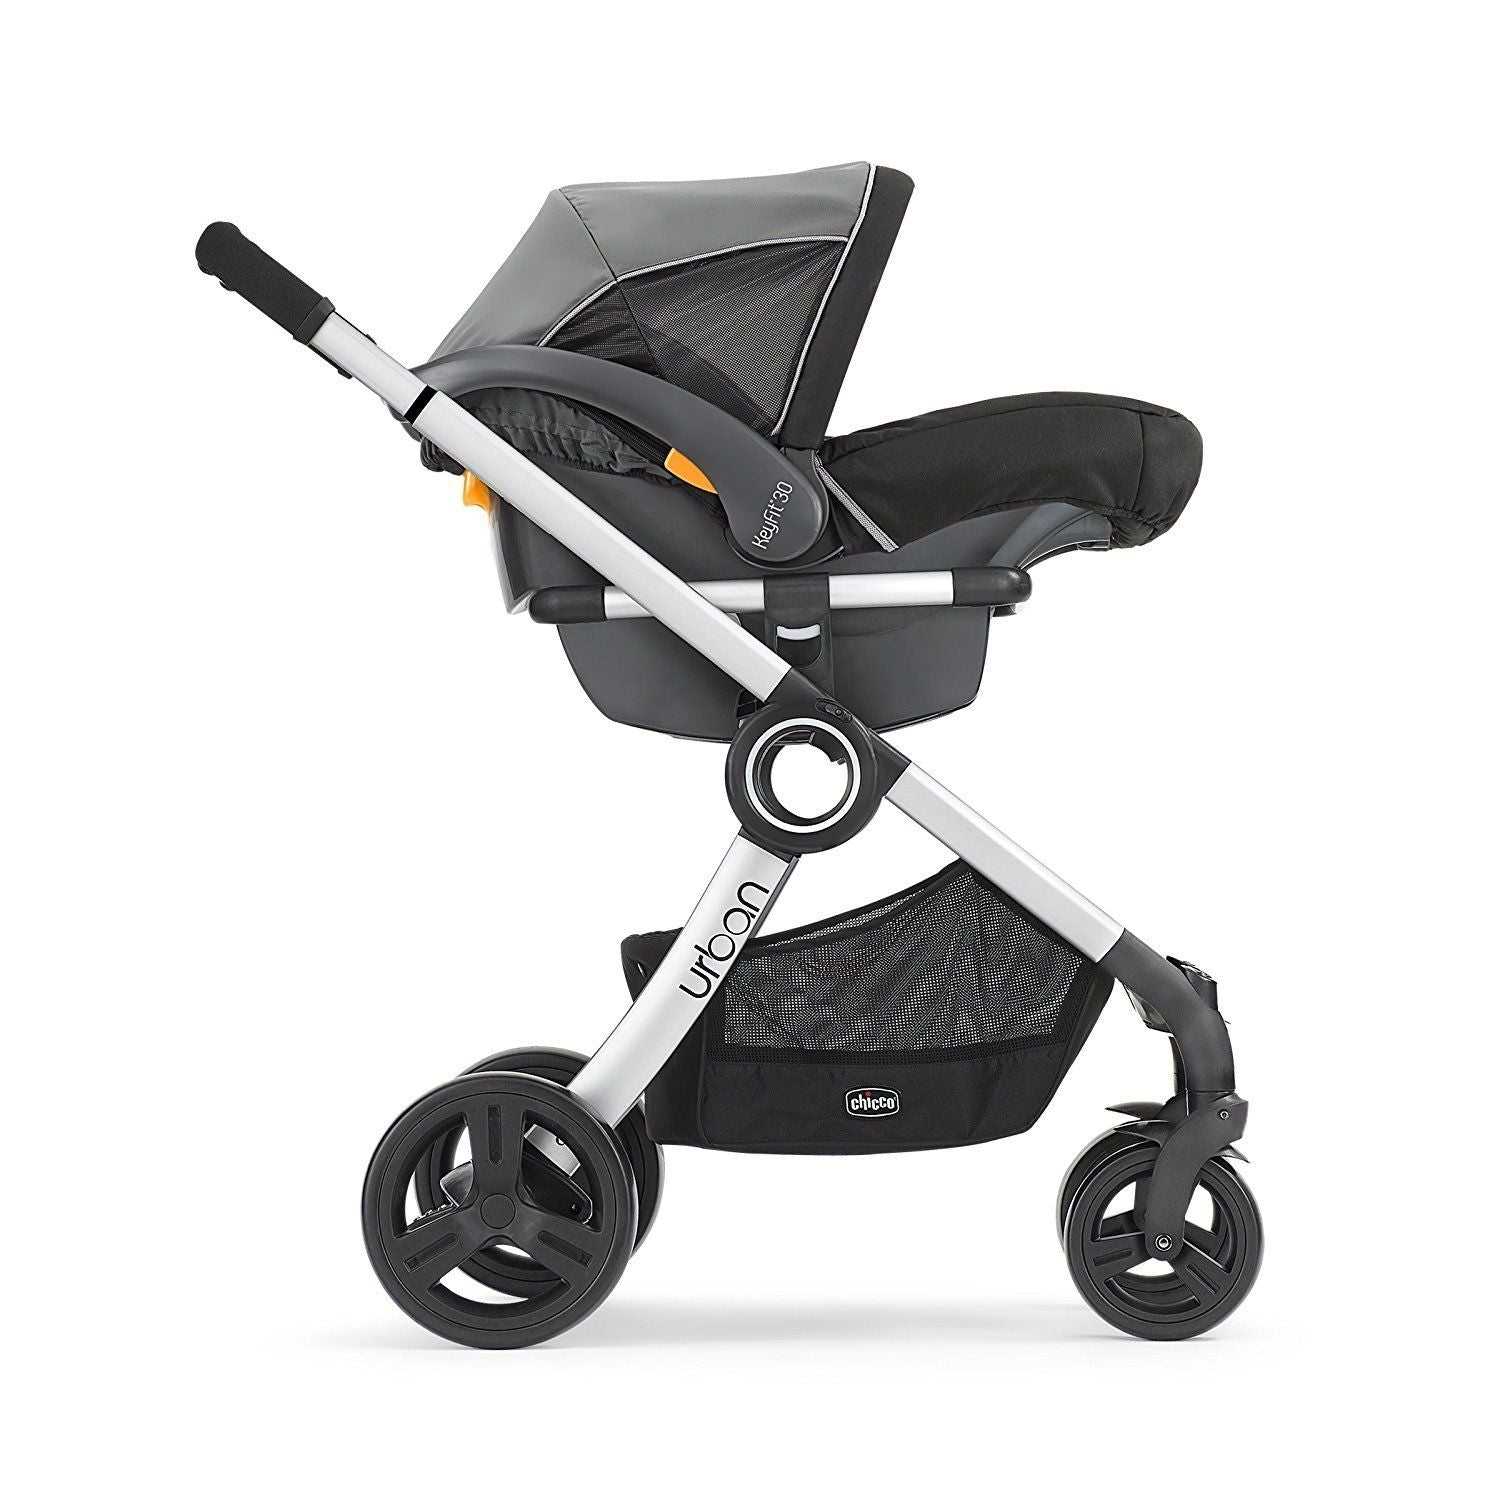 Chicco Urban 6-in-1 Modular Stroller - Manhattan